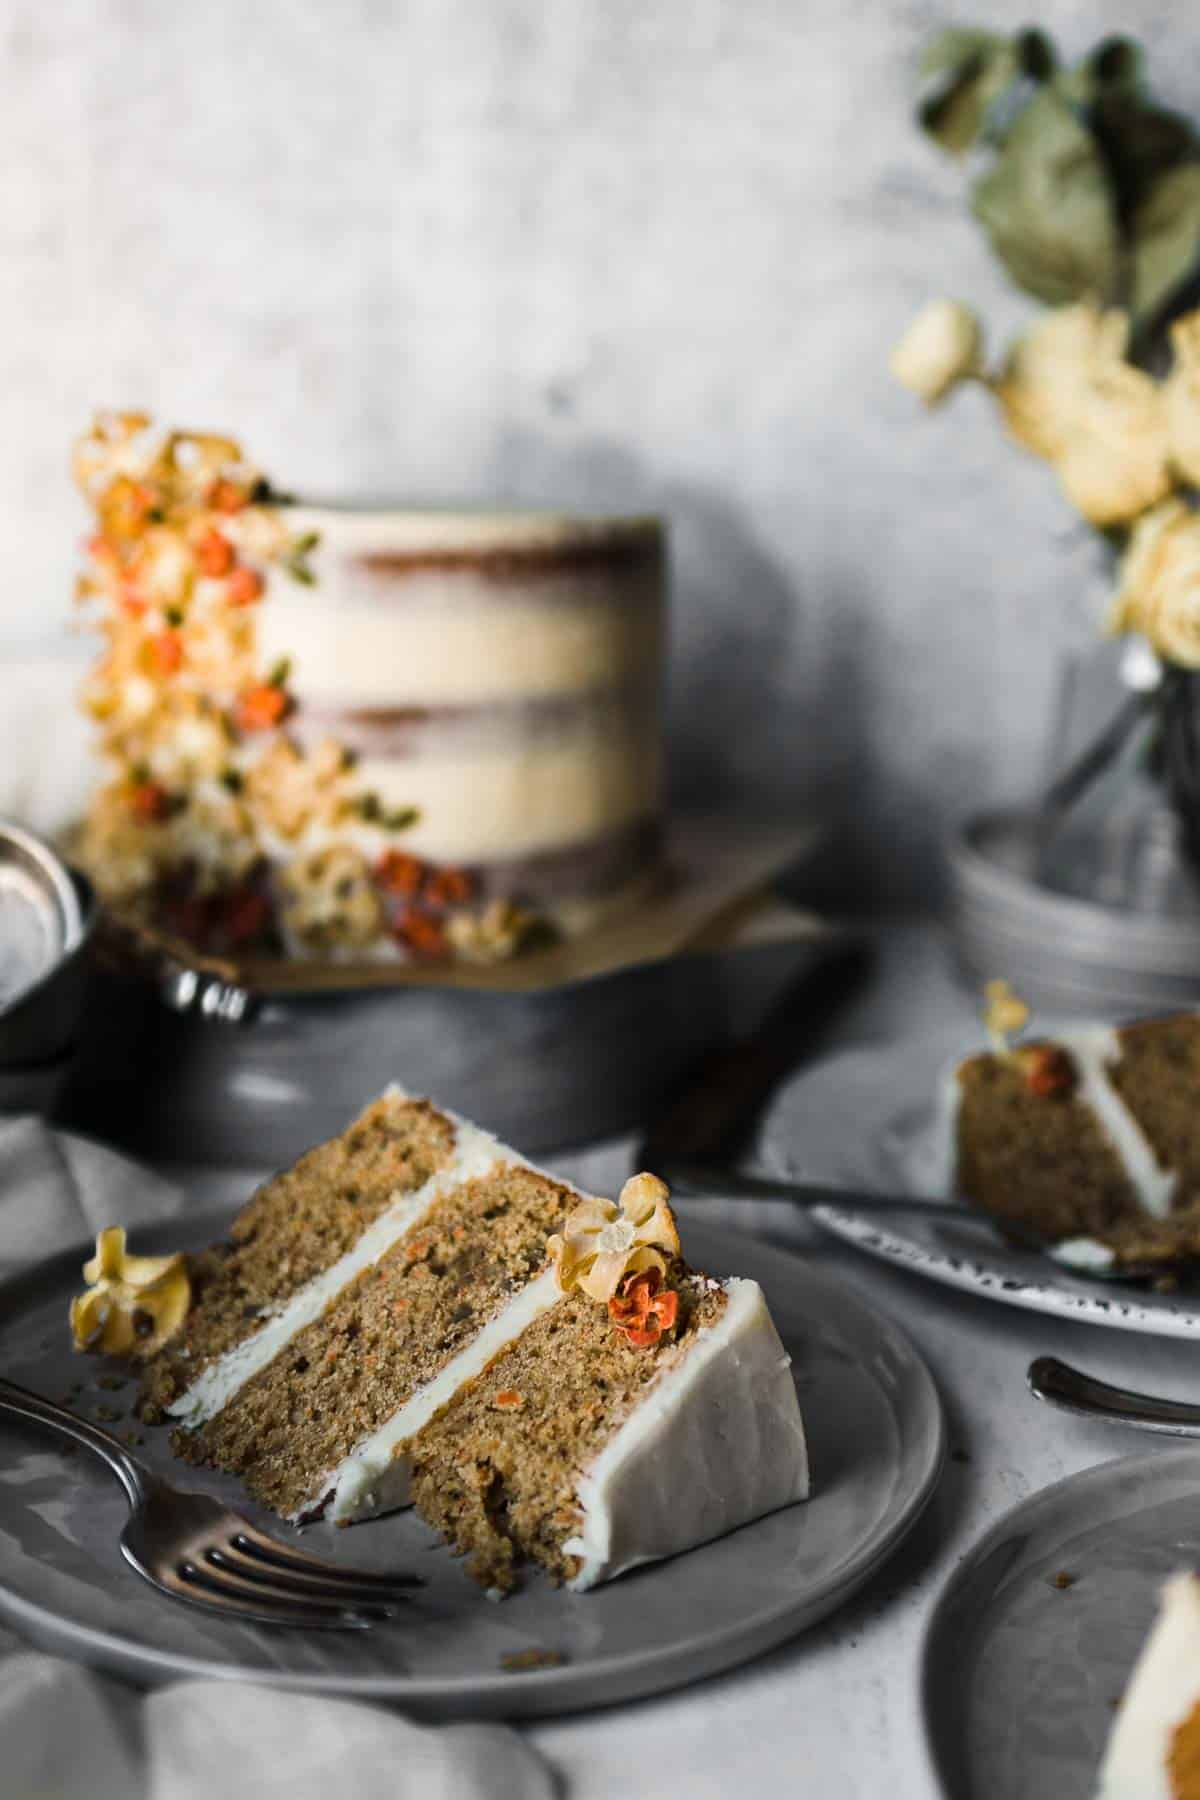 A slice of carrot spice cake on a plate with a fork and one missing bite. The whole cake is in the background and is surrounded by other plates and slices